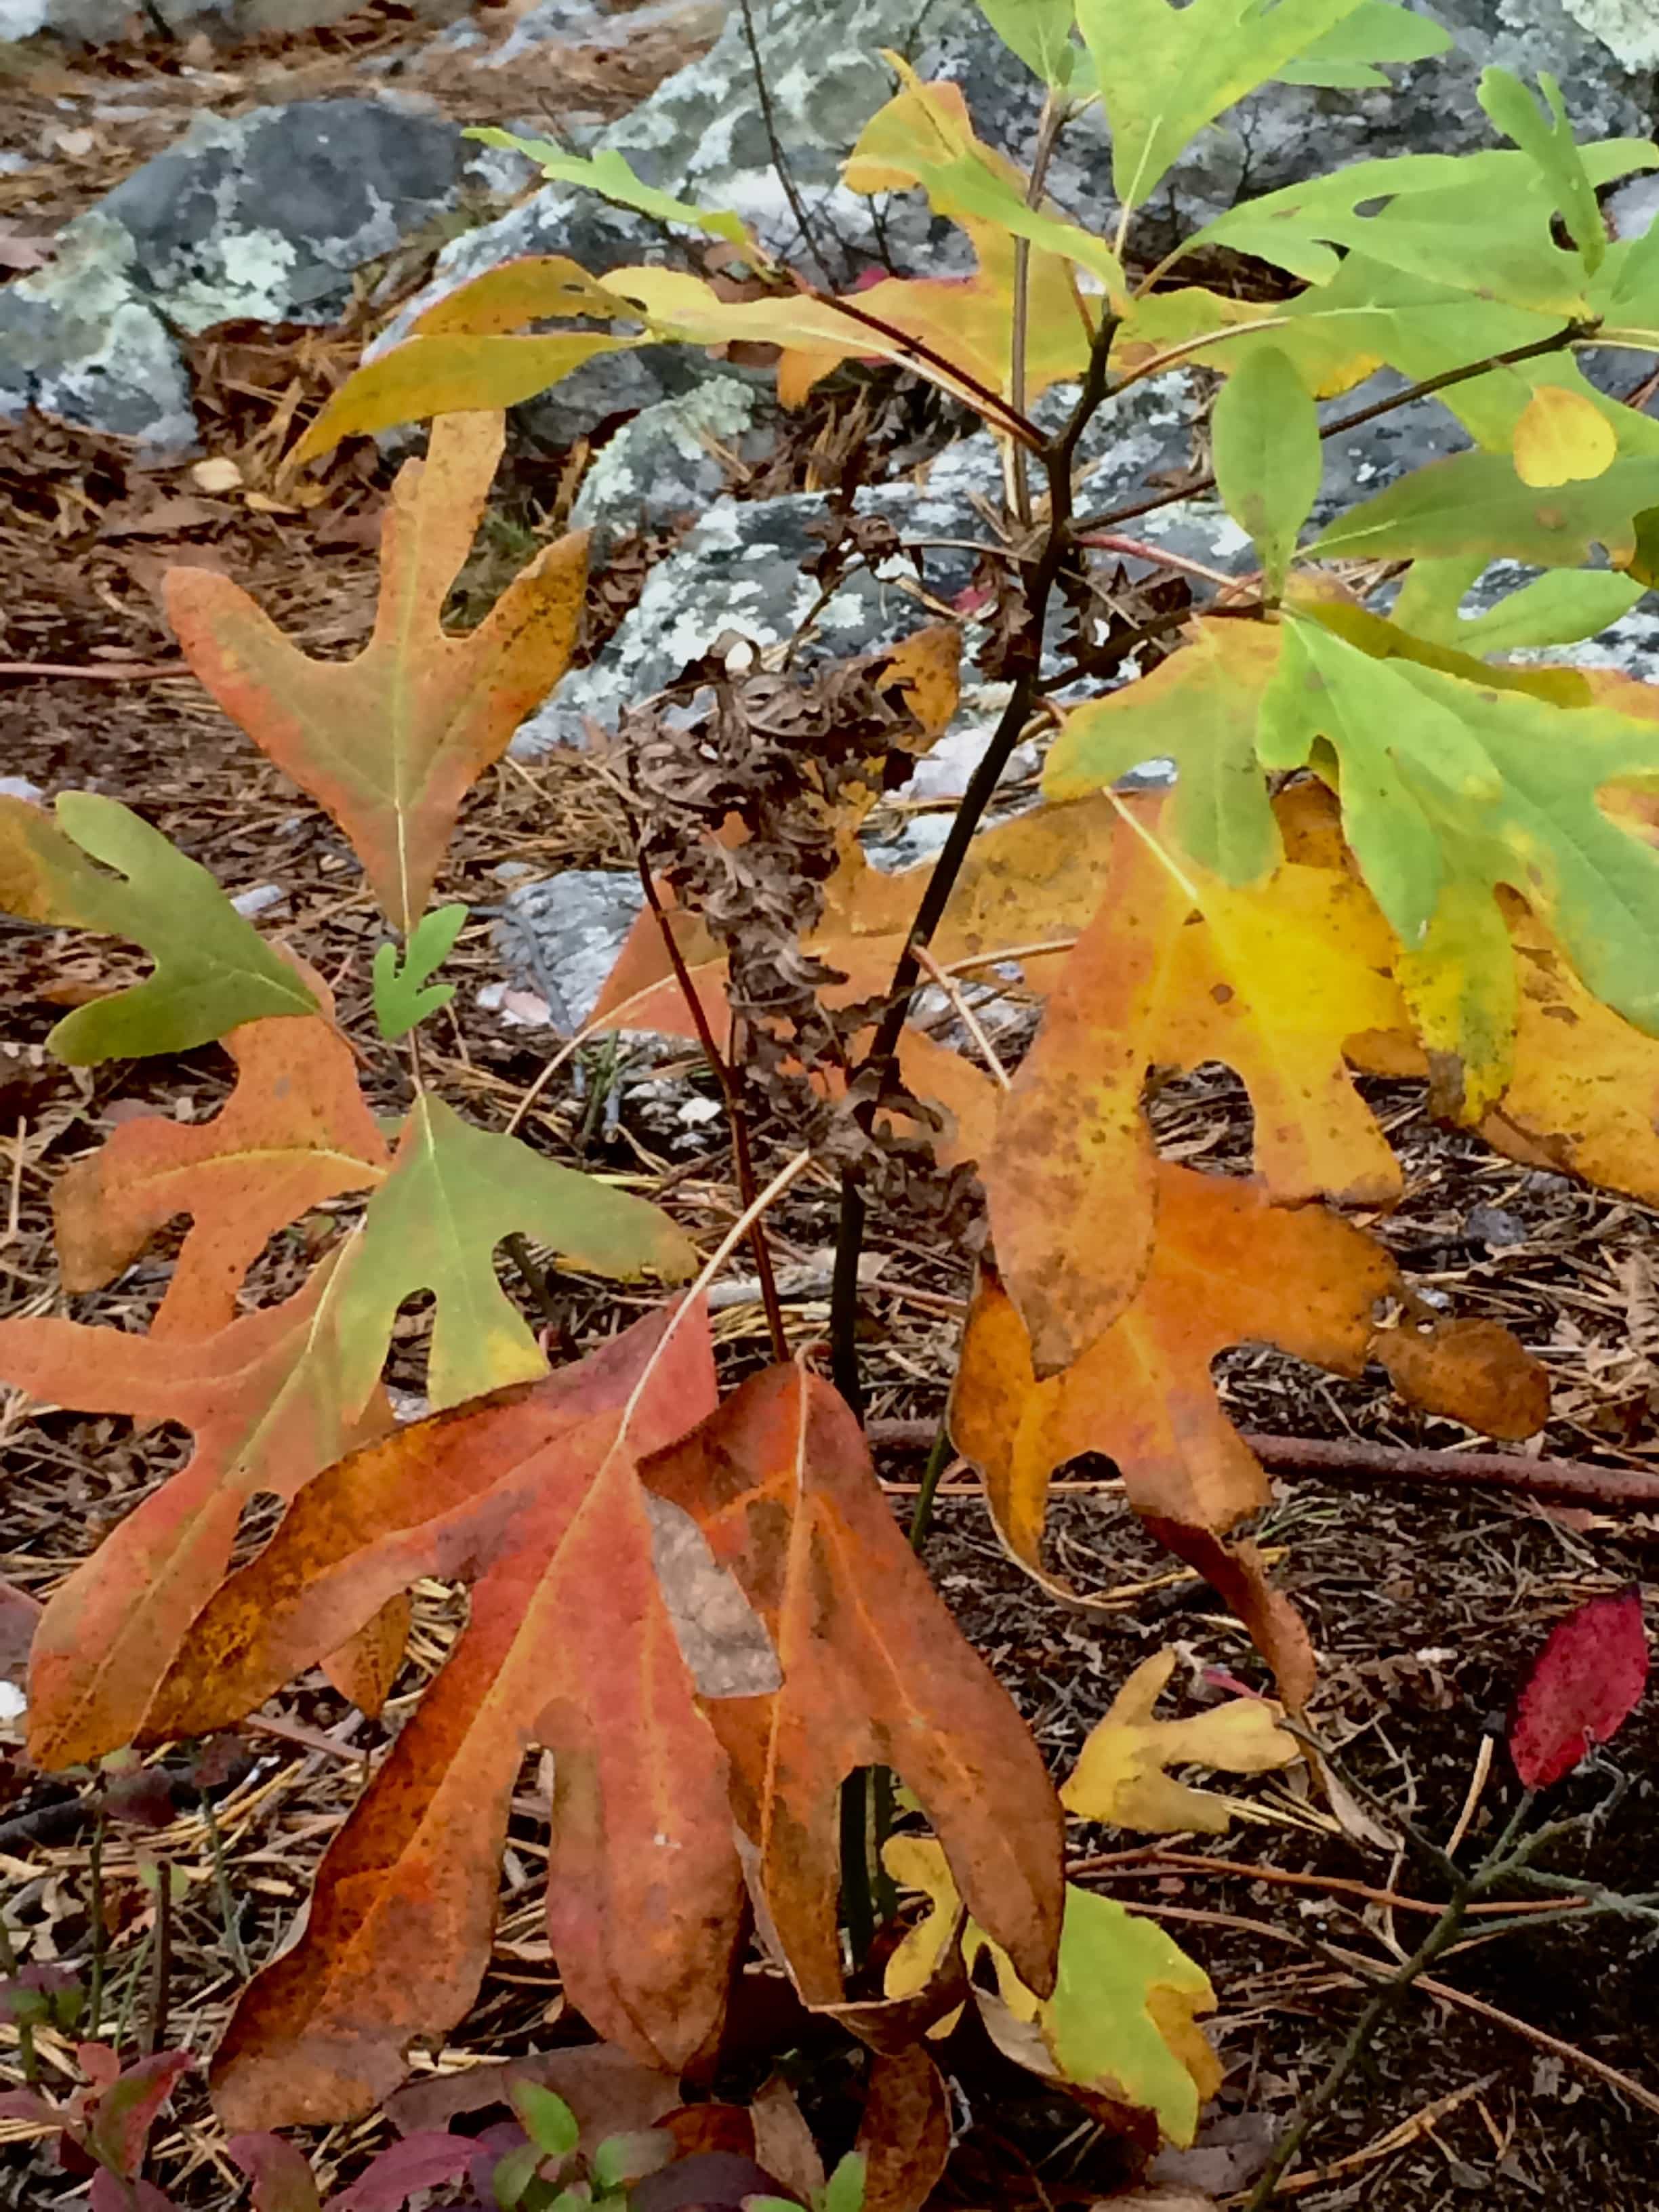 Multicolored sassafras leaves.